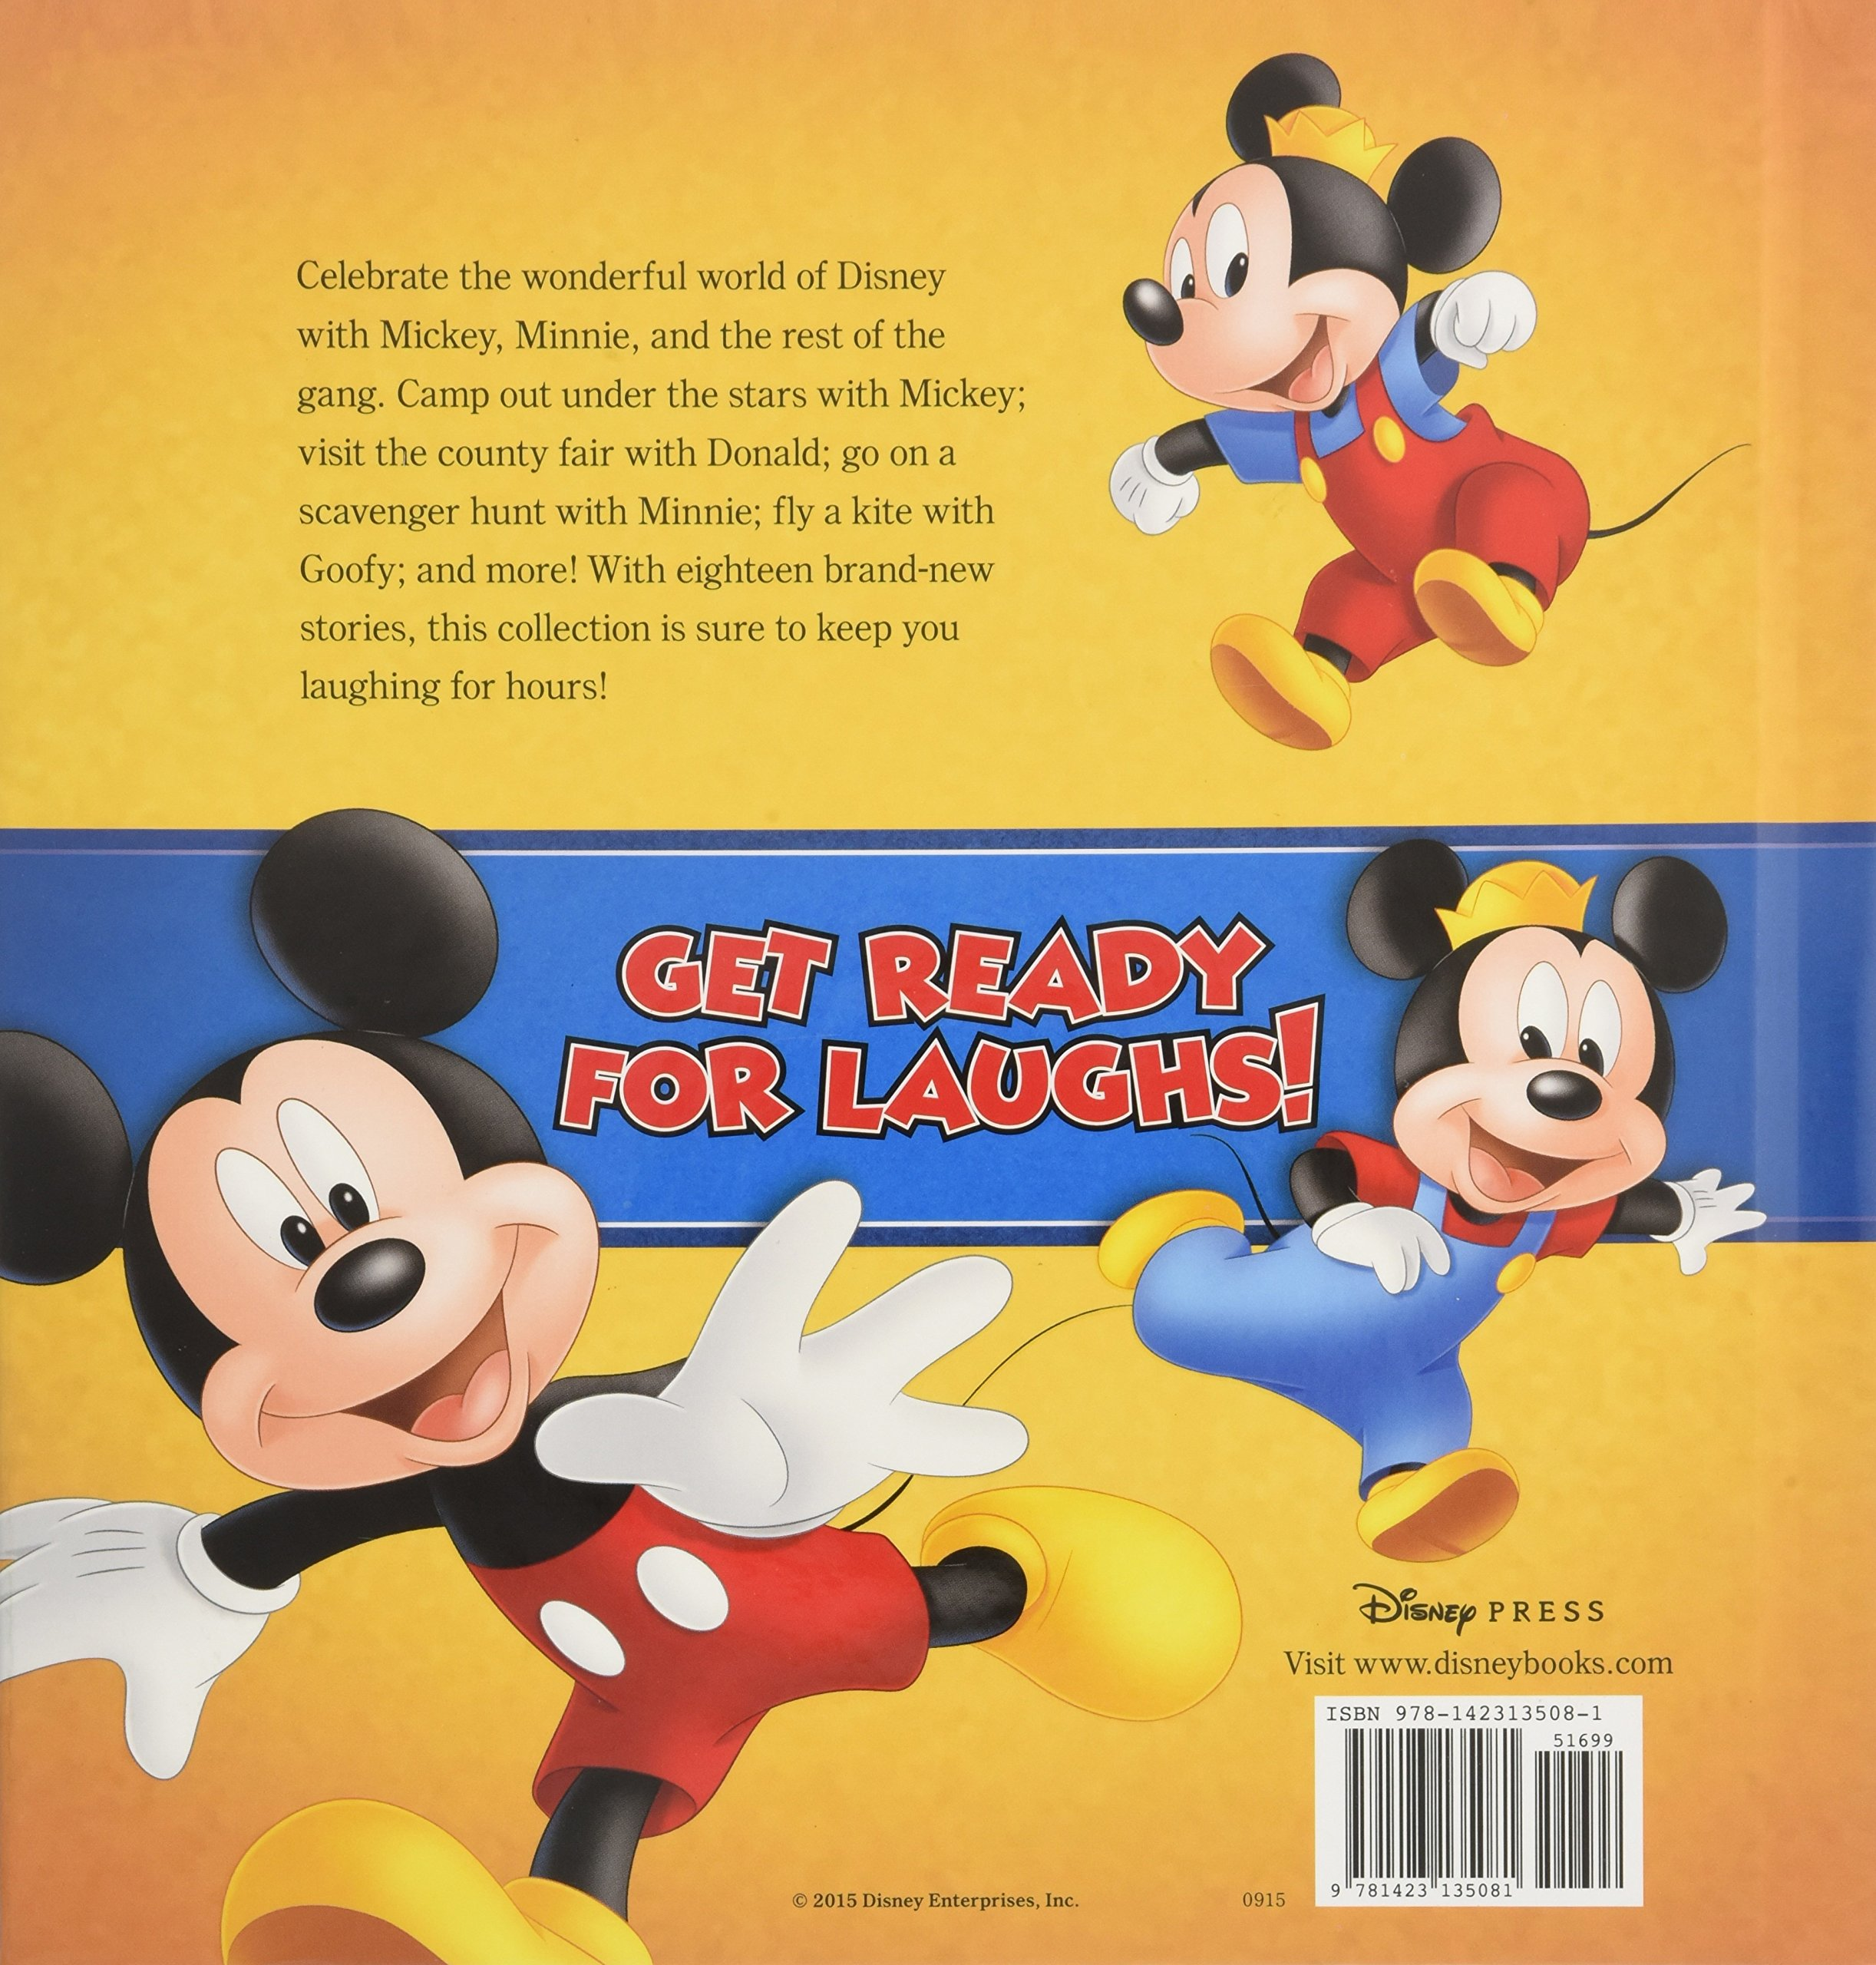 Mickey and Minnie's Storybook Collection by Disney Press (Image #2)